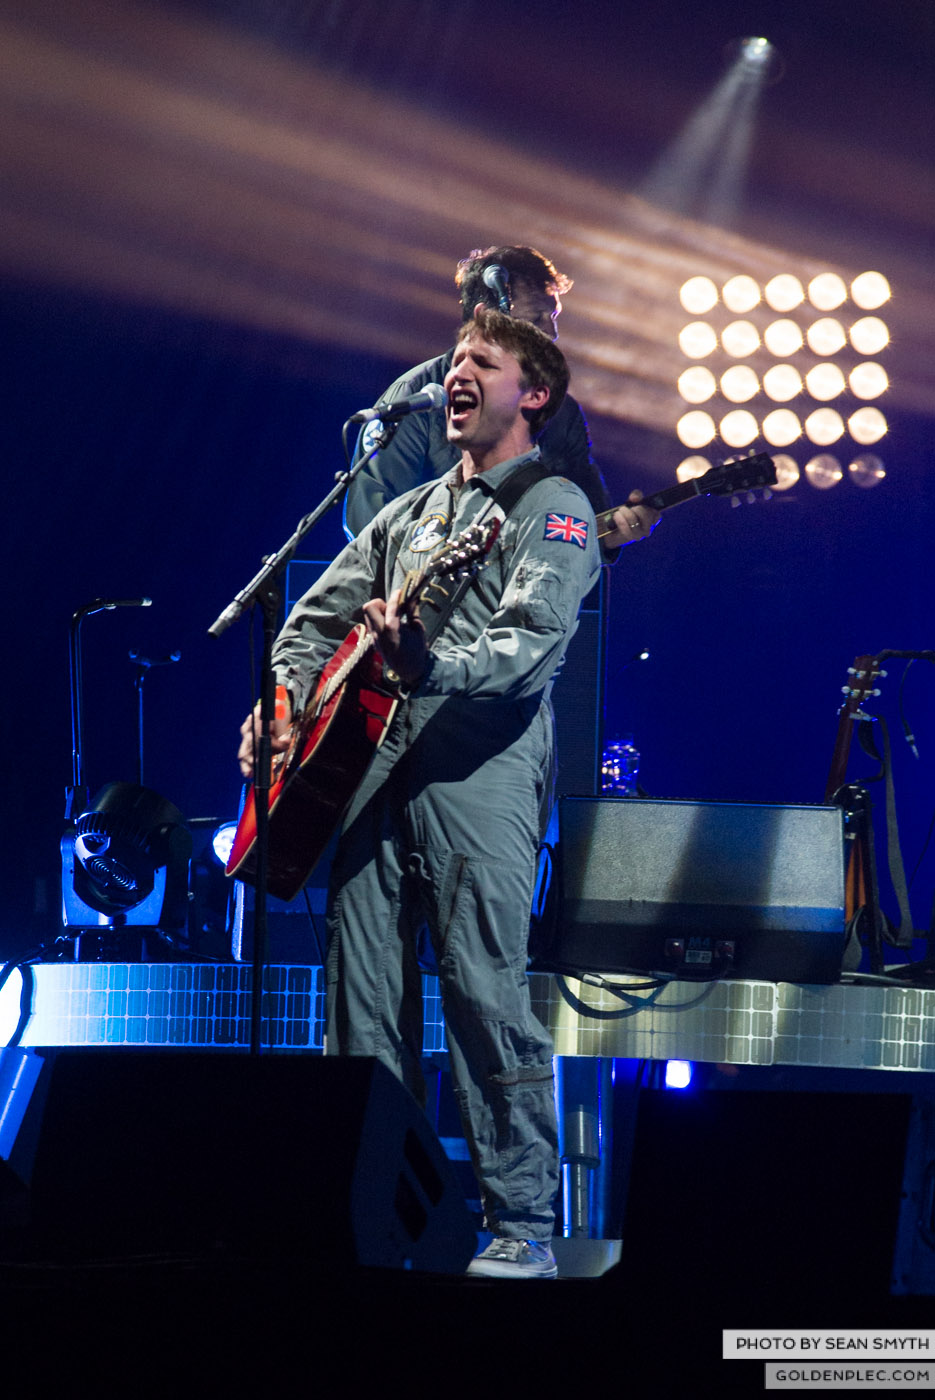 james-blunt-at-3arena-by-sean-smyth-20-11-14-26-of-29